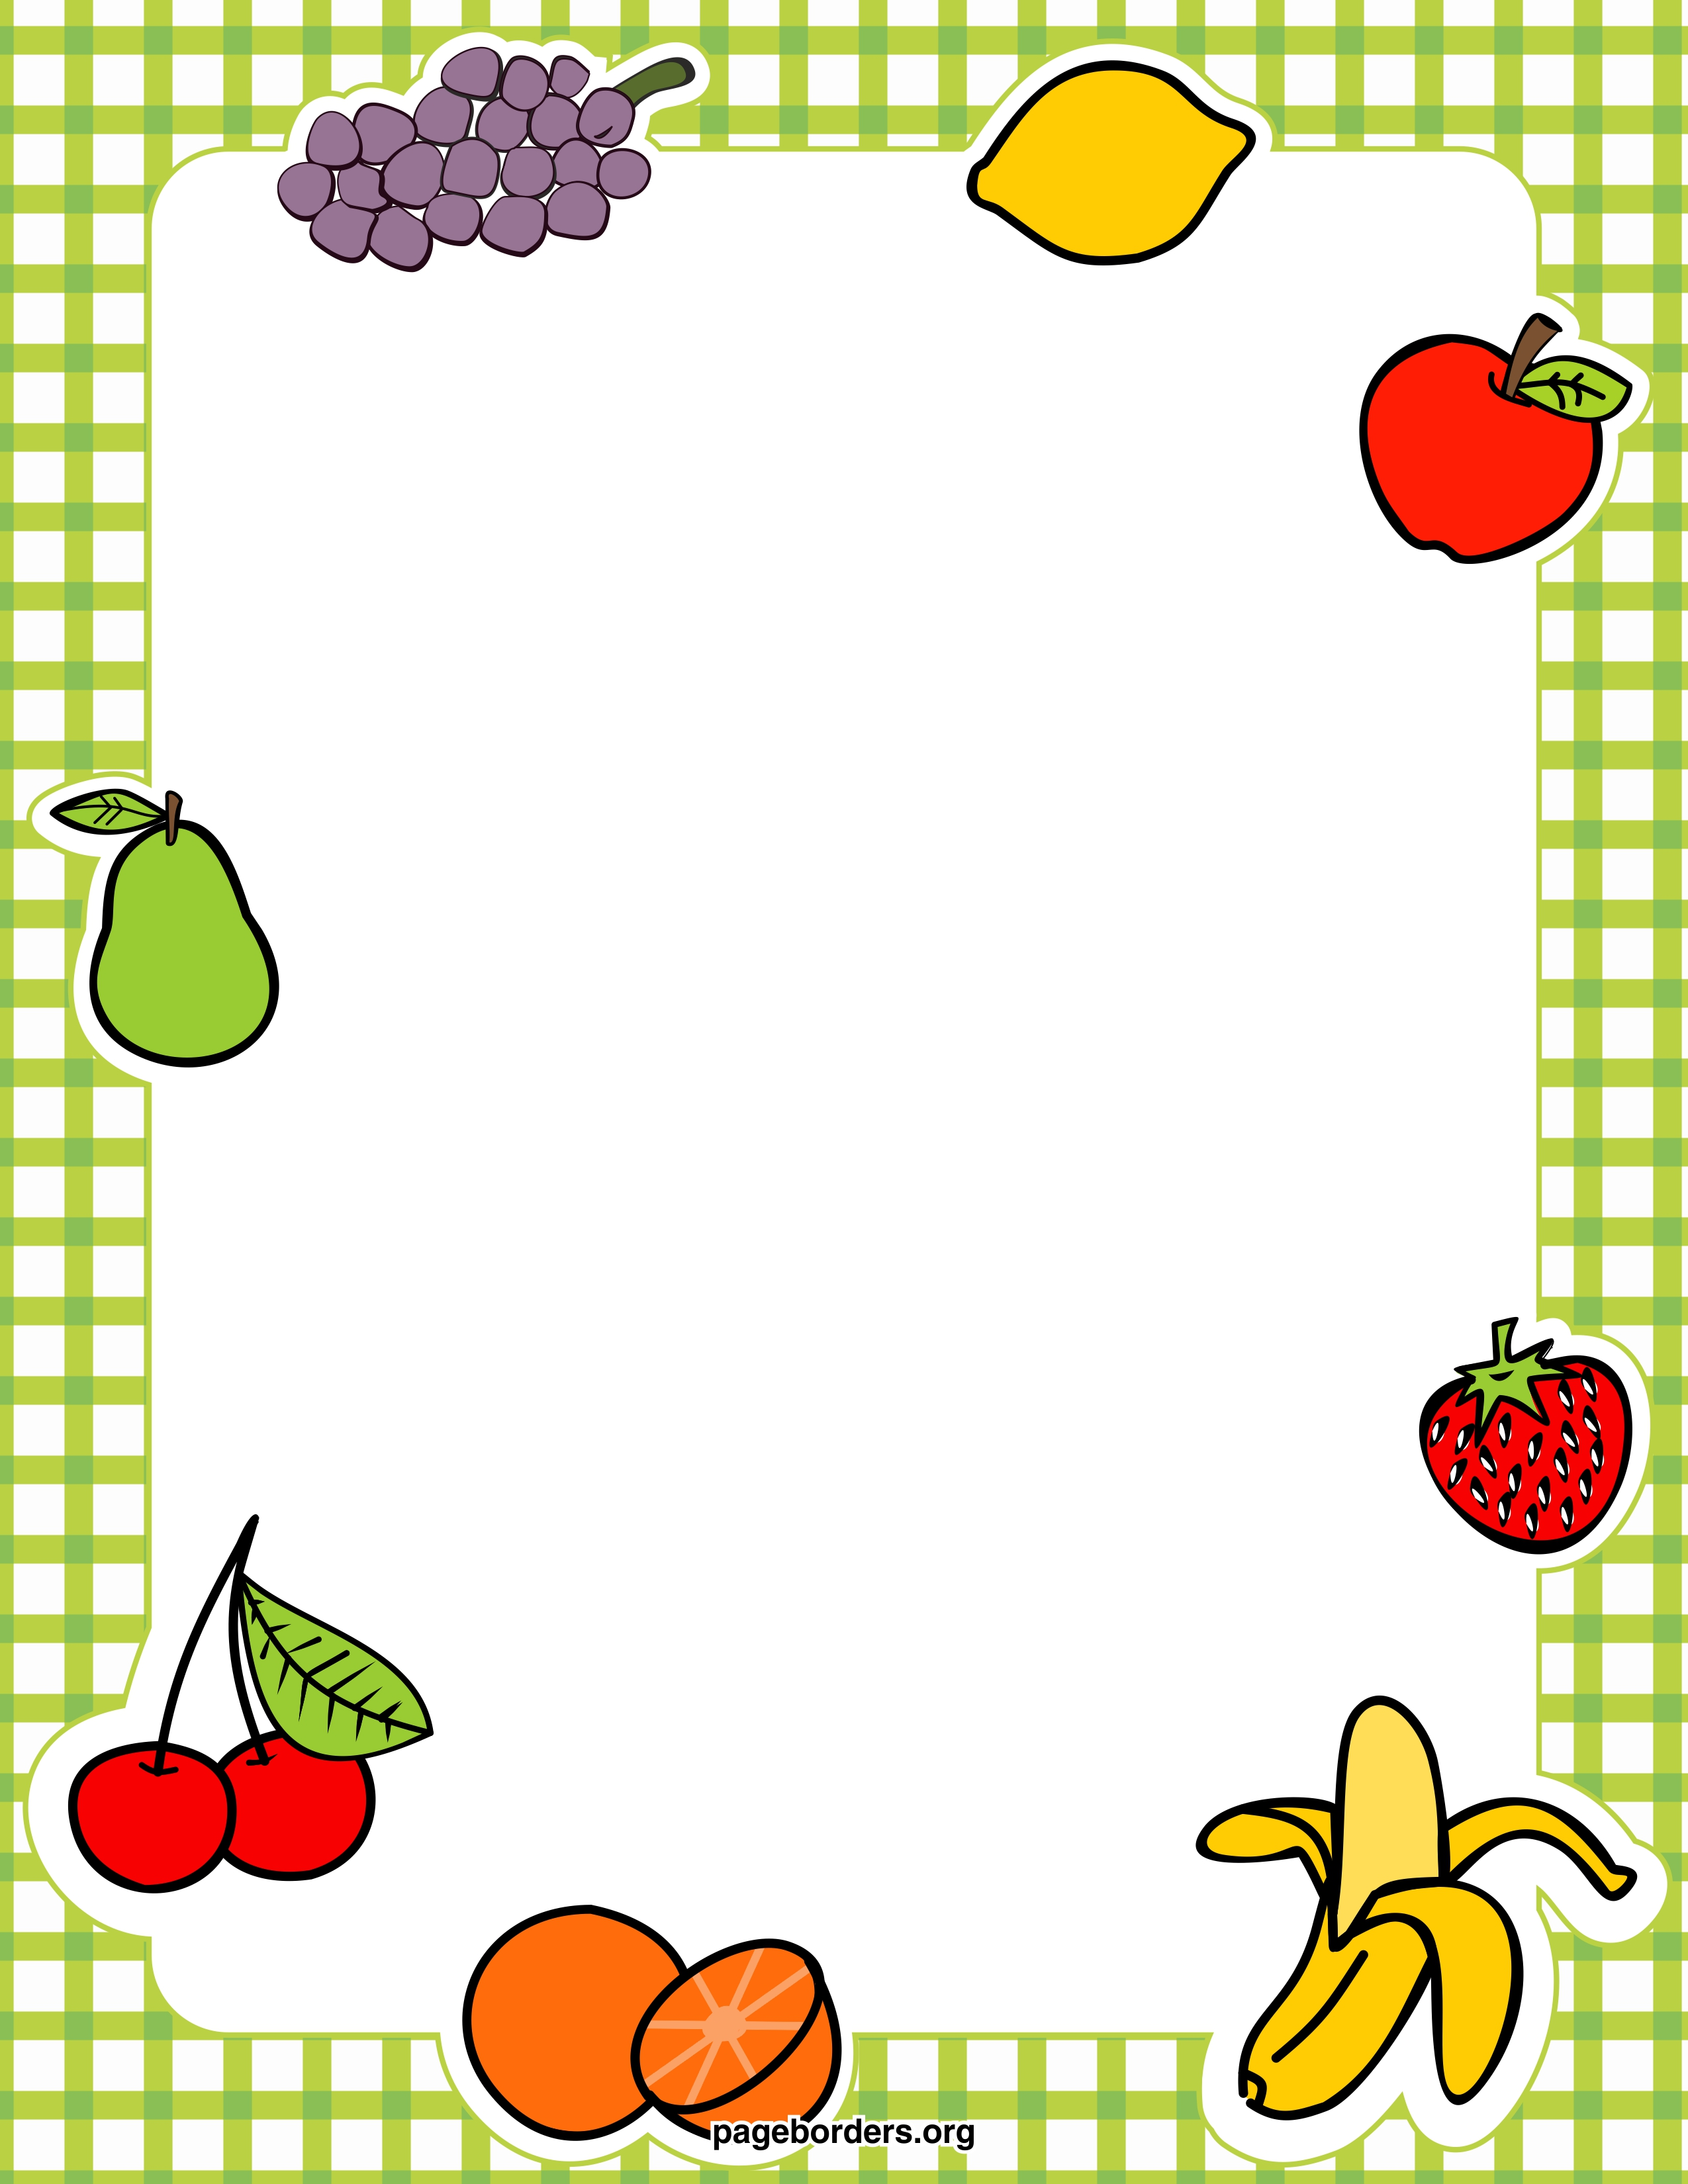 Clipart Food Borderfood Clipart Border Clipart Panda   Free Clipart